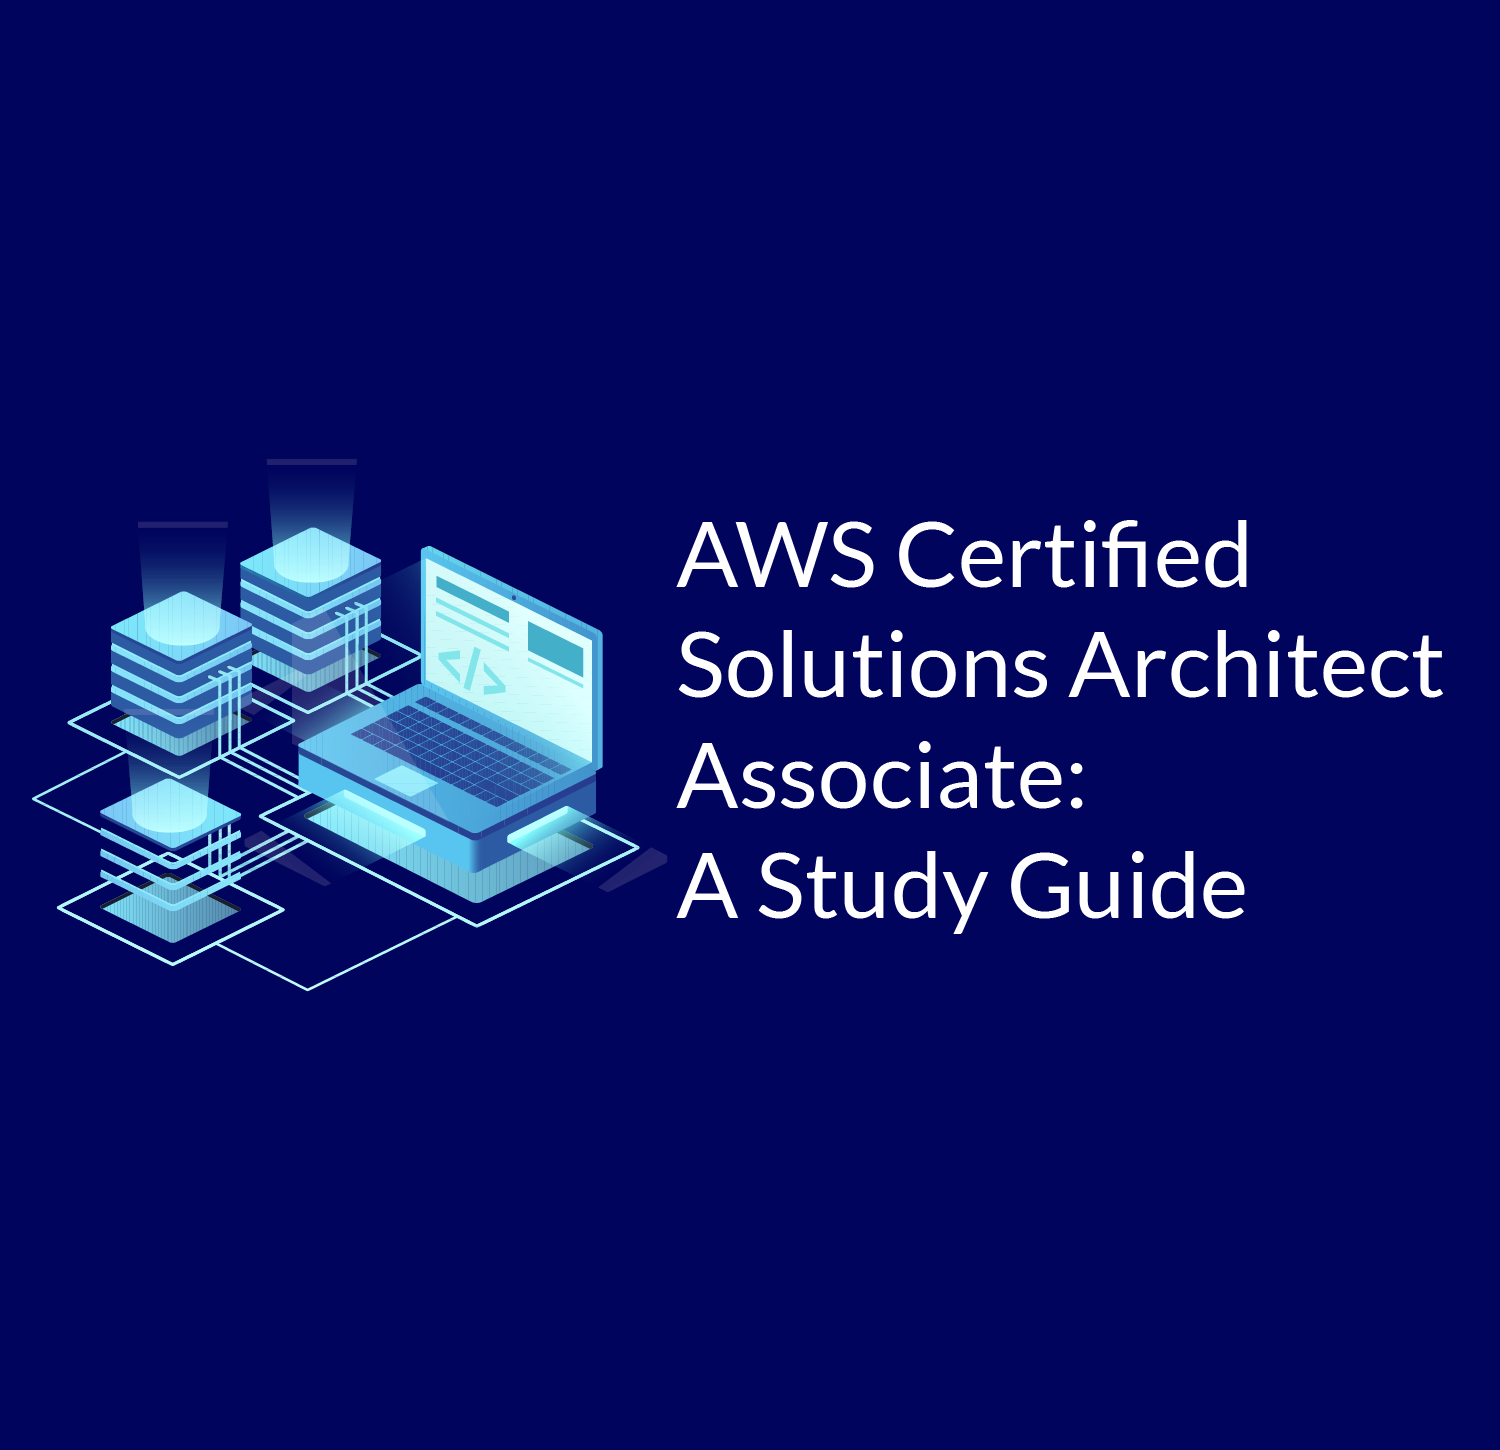 A complete AWS certified Solutions Architect associate study